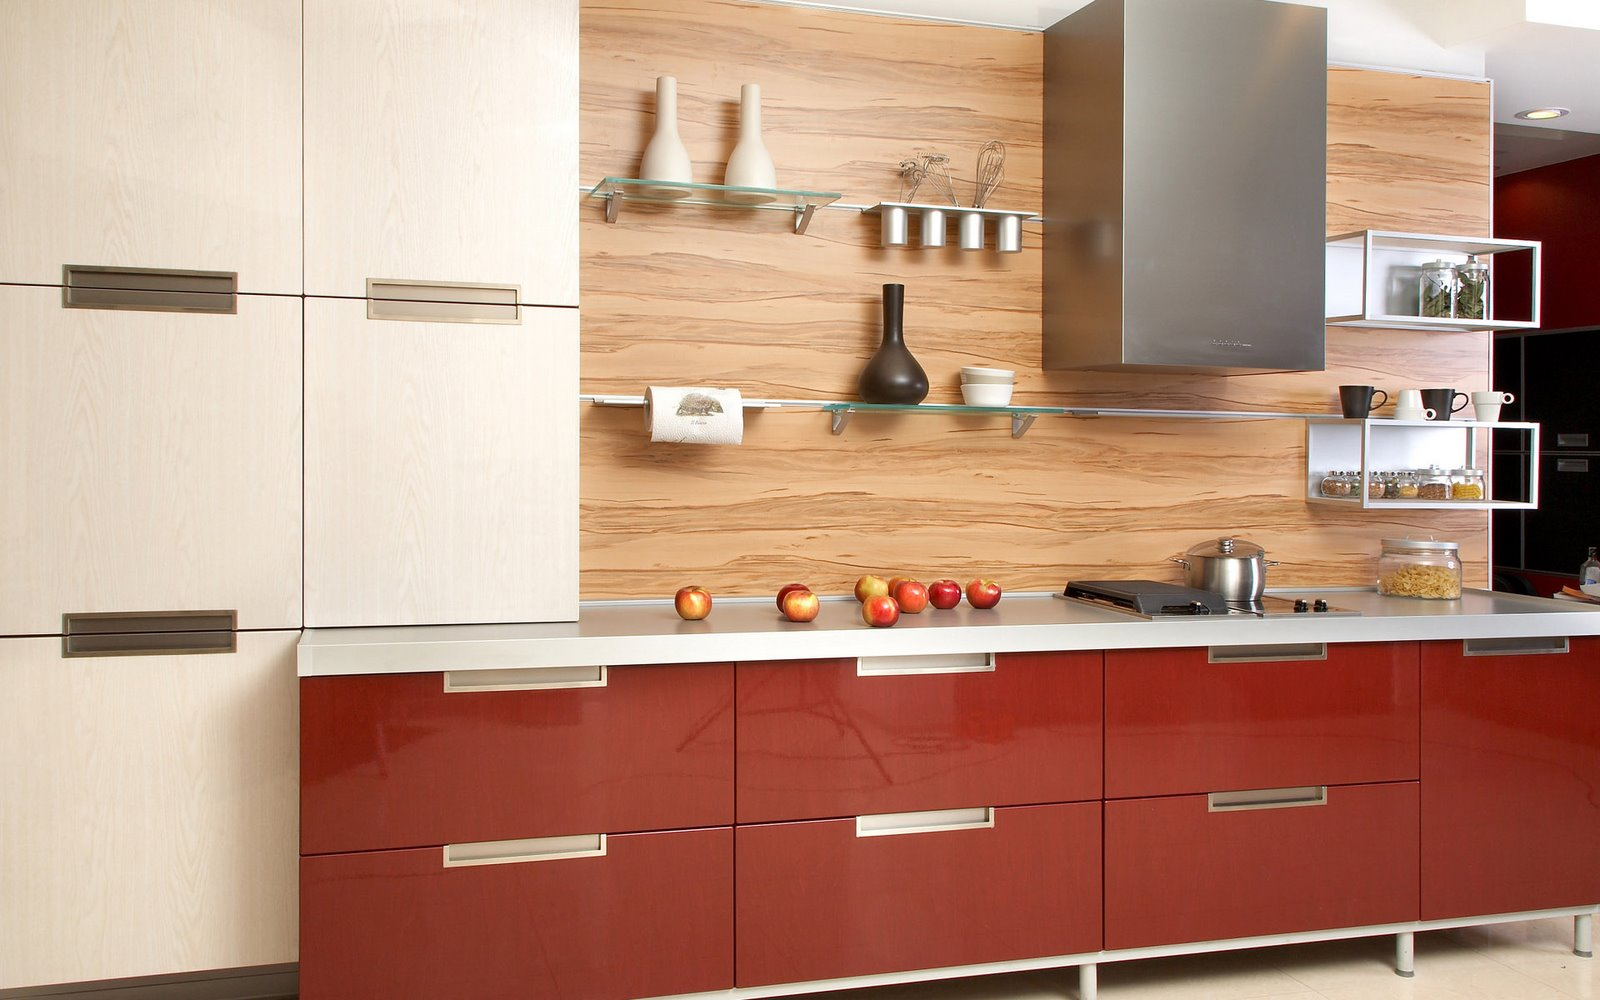 Modern wood kitchen design dream kitchens pinterest for Contemporary kitchen design